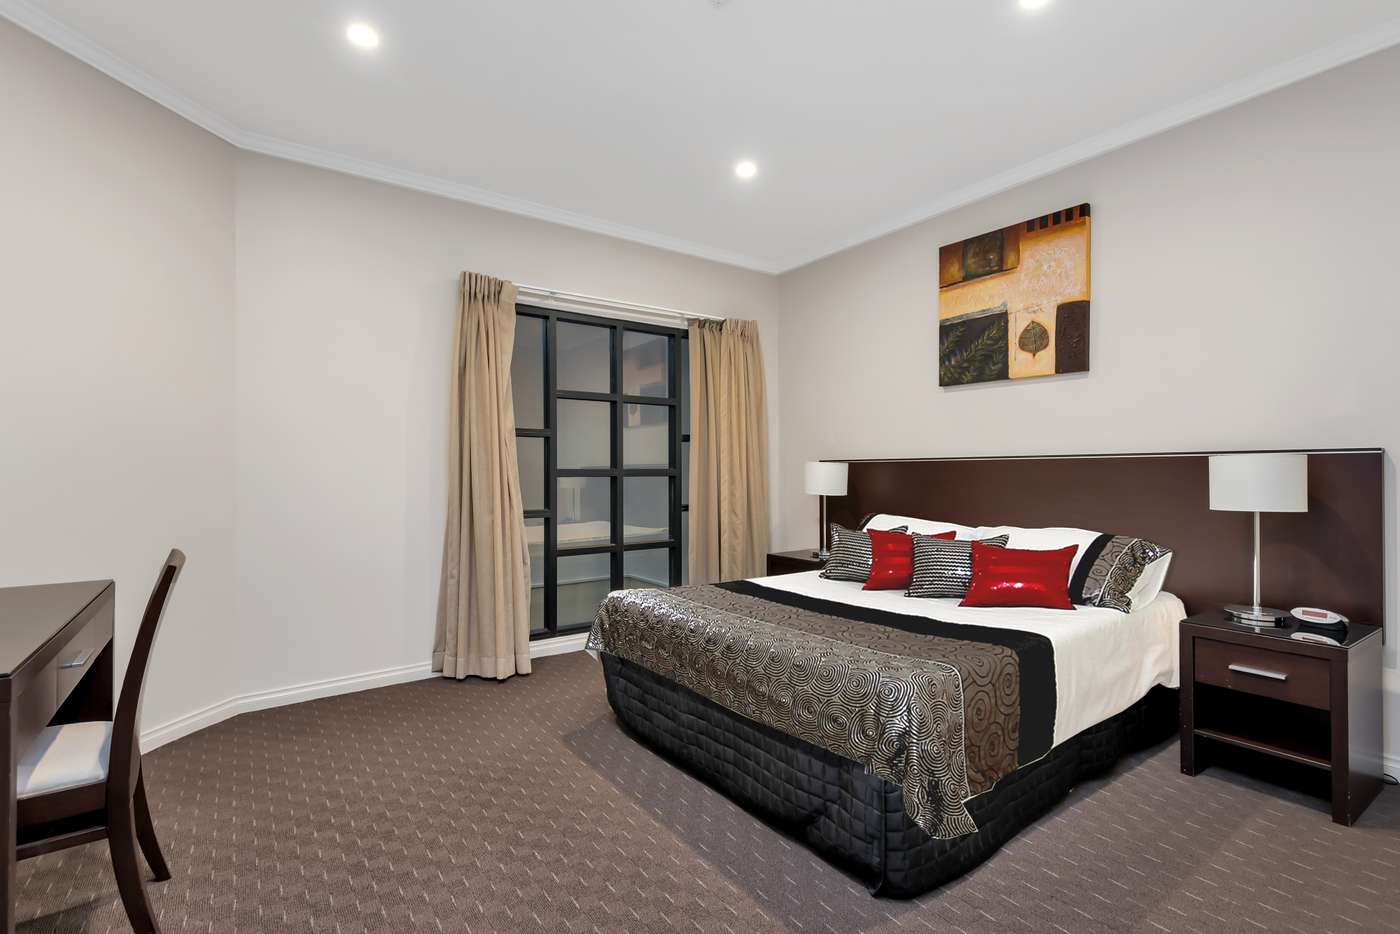 Fifth view of Homely apartment listing, 206/88 Frome Street, Adelaide SA 5000